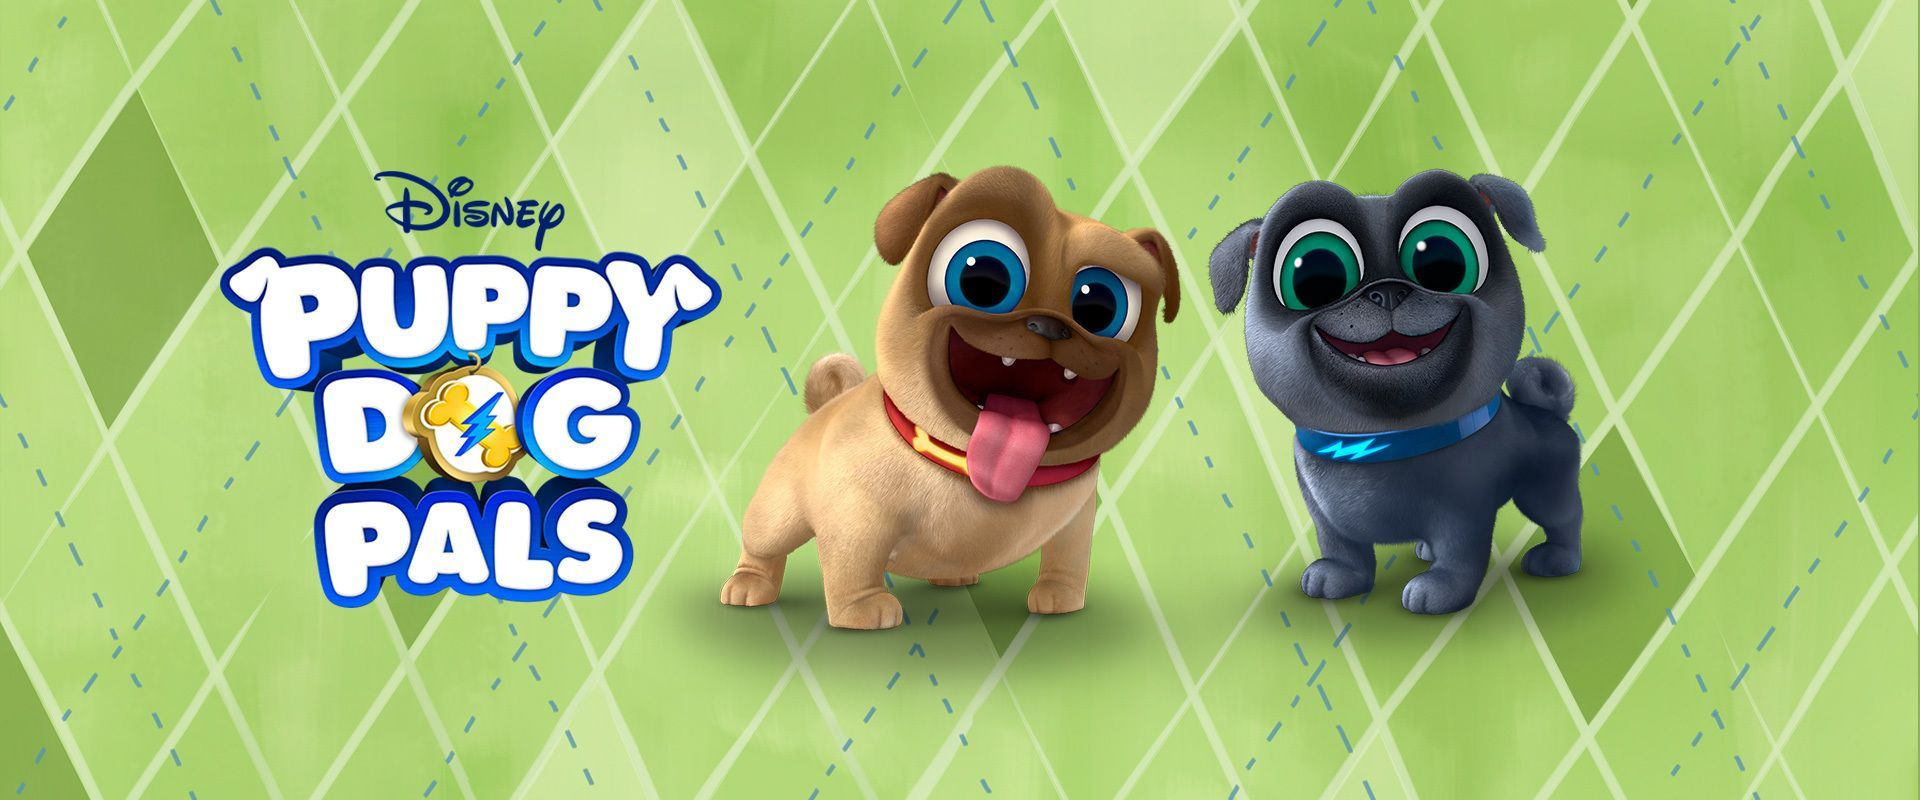 Puppy Dog Pals Wallpapers Wallpaper Cave Dogs And Puppies Puppies Dog Photos